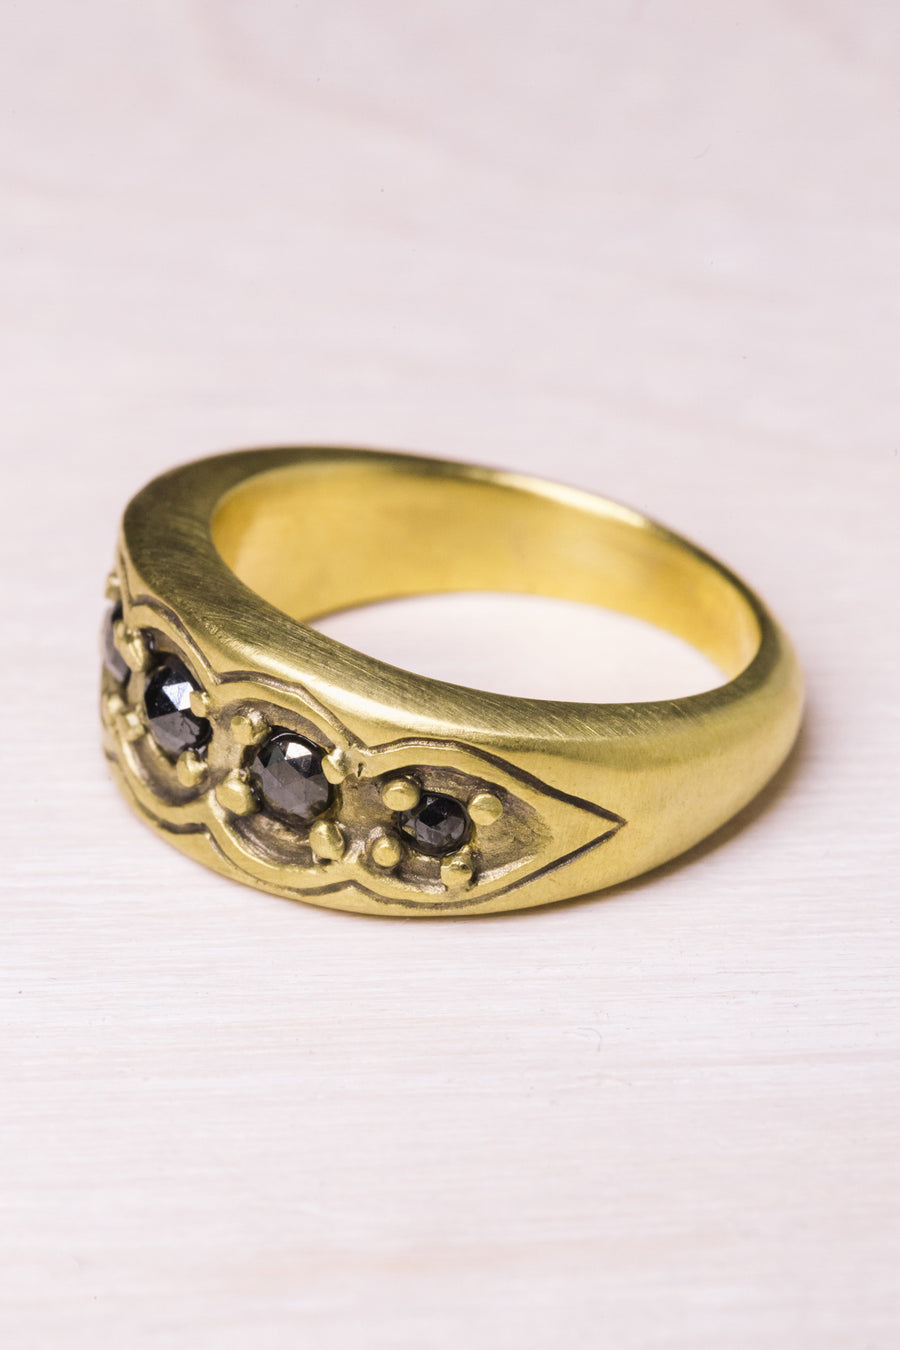 Ring: Remembrance